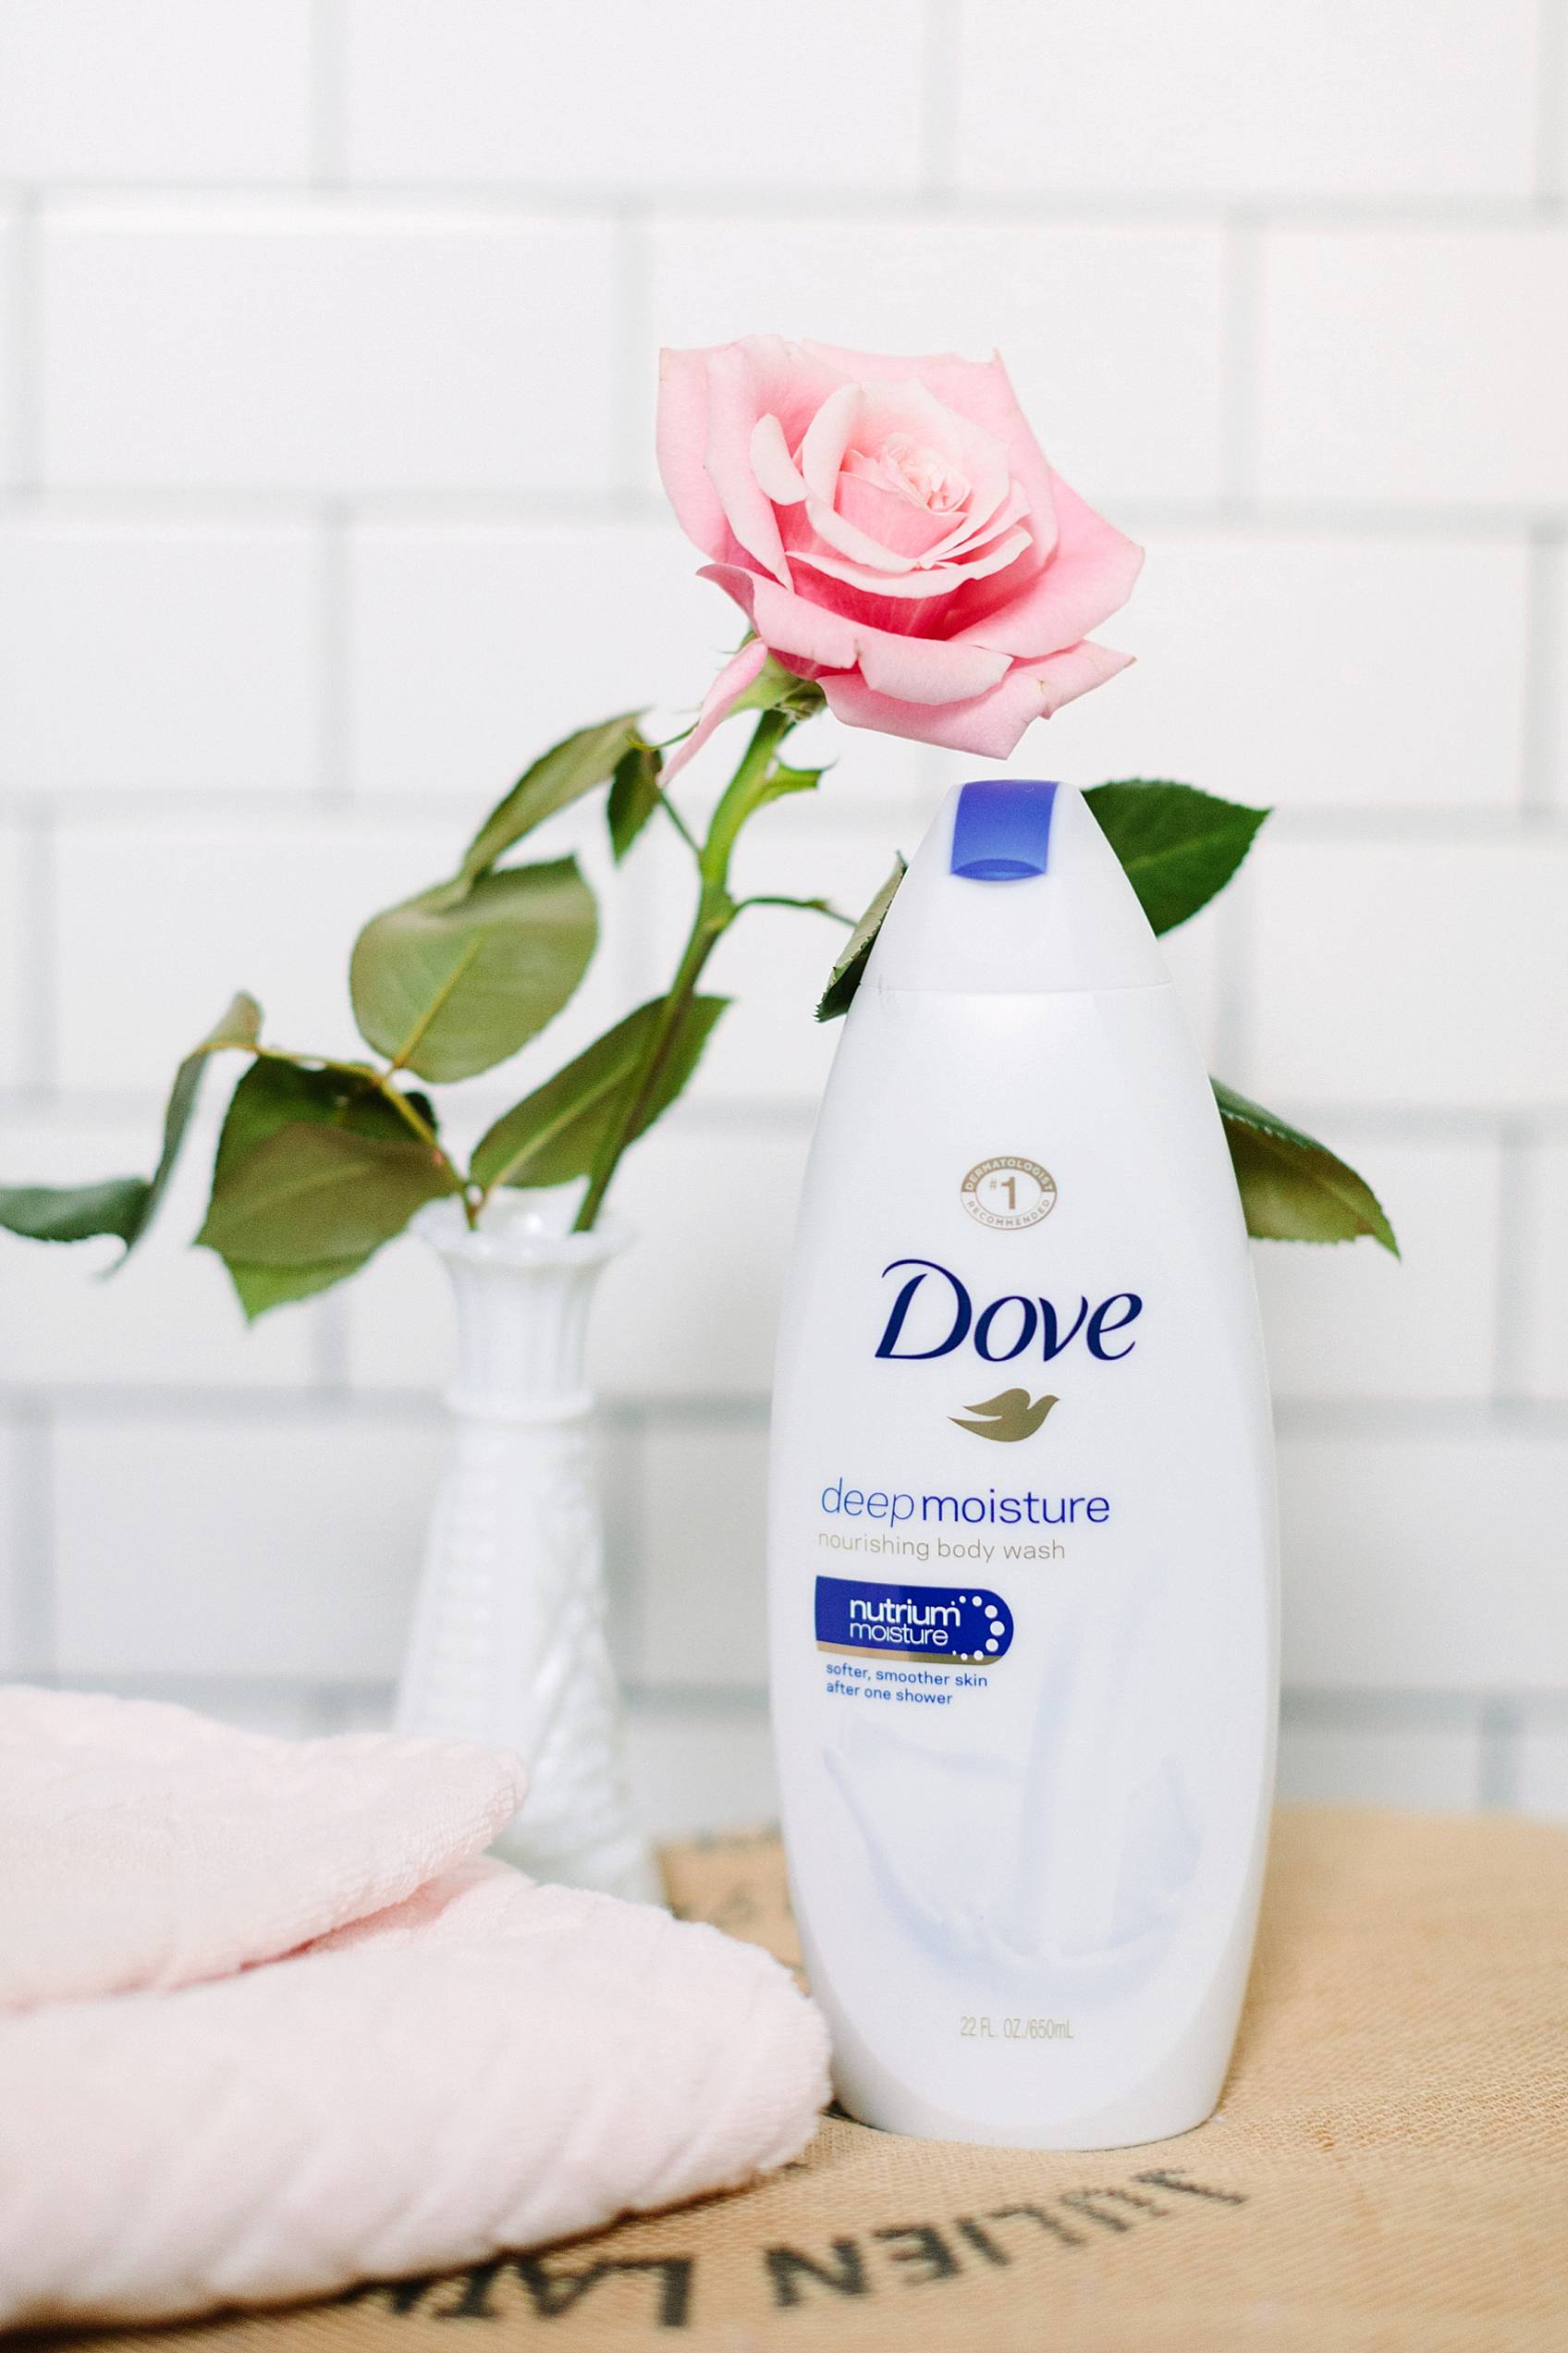 dove beauty shower wash on stool with rose